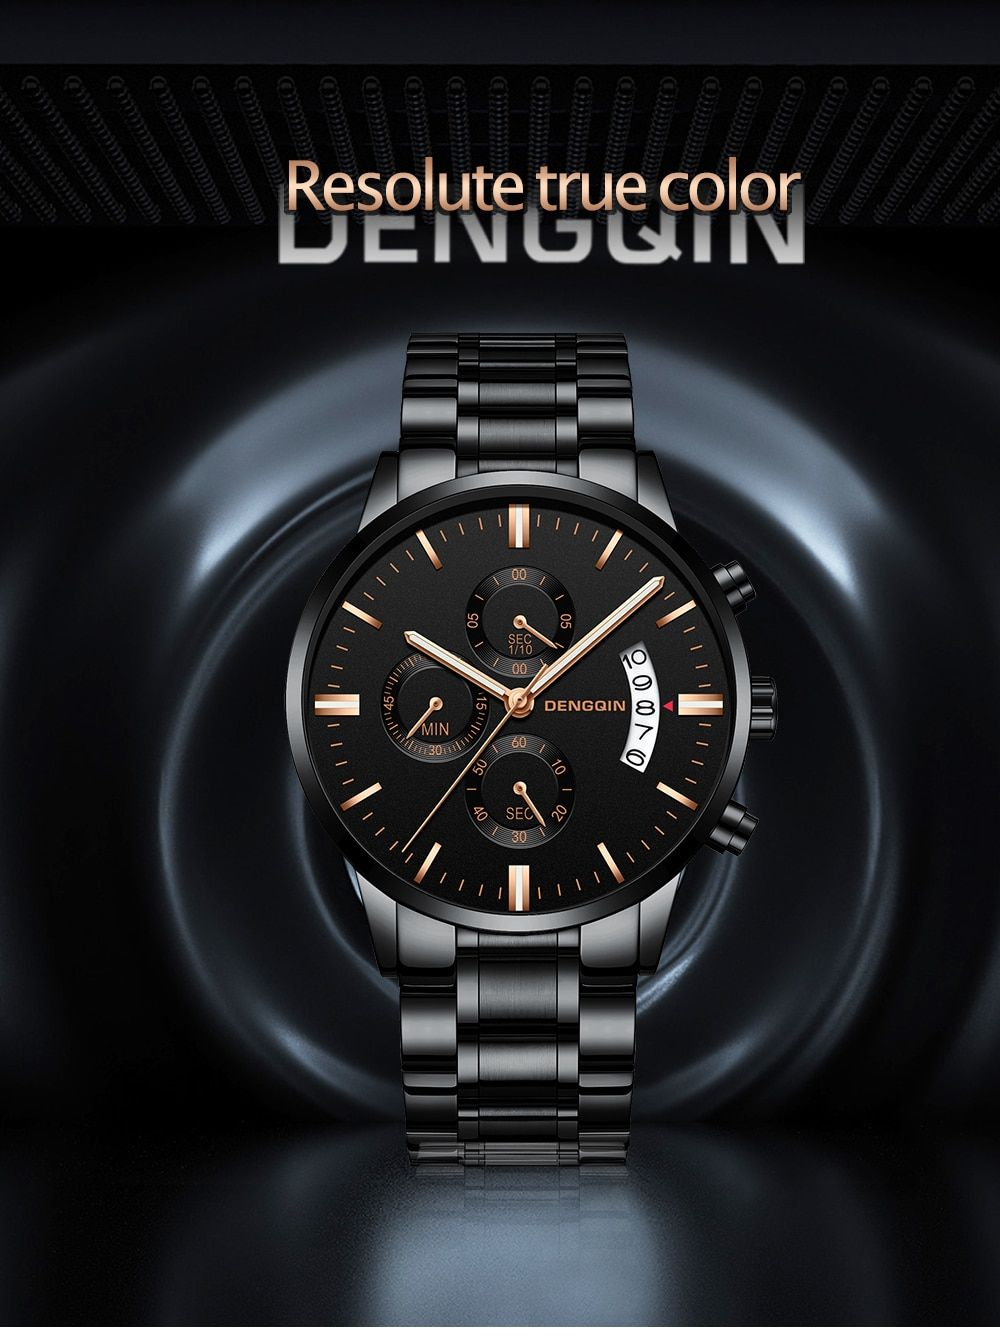 Relogio Masculino Men Watches Luxury Famous Top Brand Mens Fashion Casual Dress Watch Military Quartz Wristwatches Saat Watches